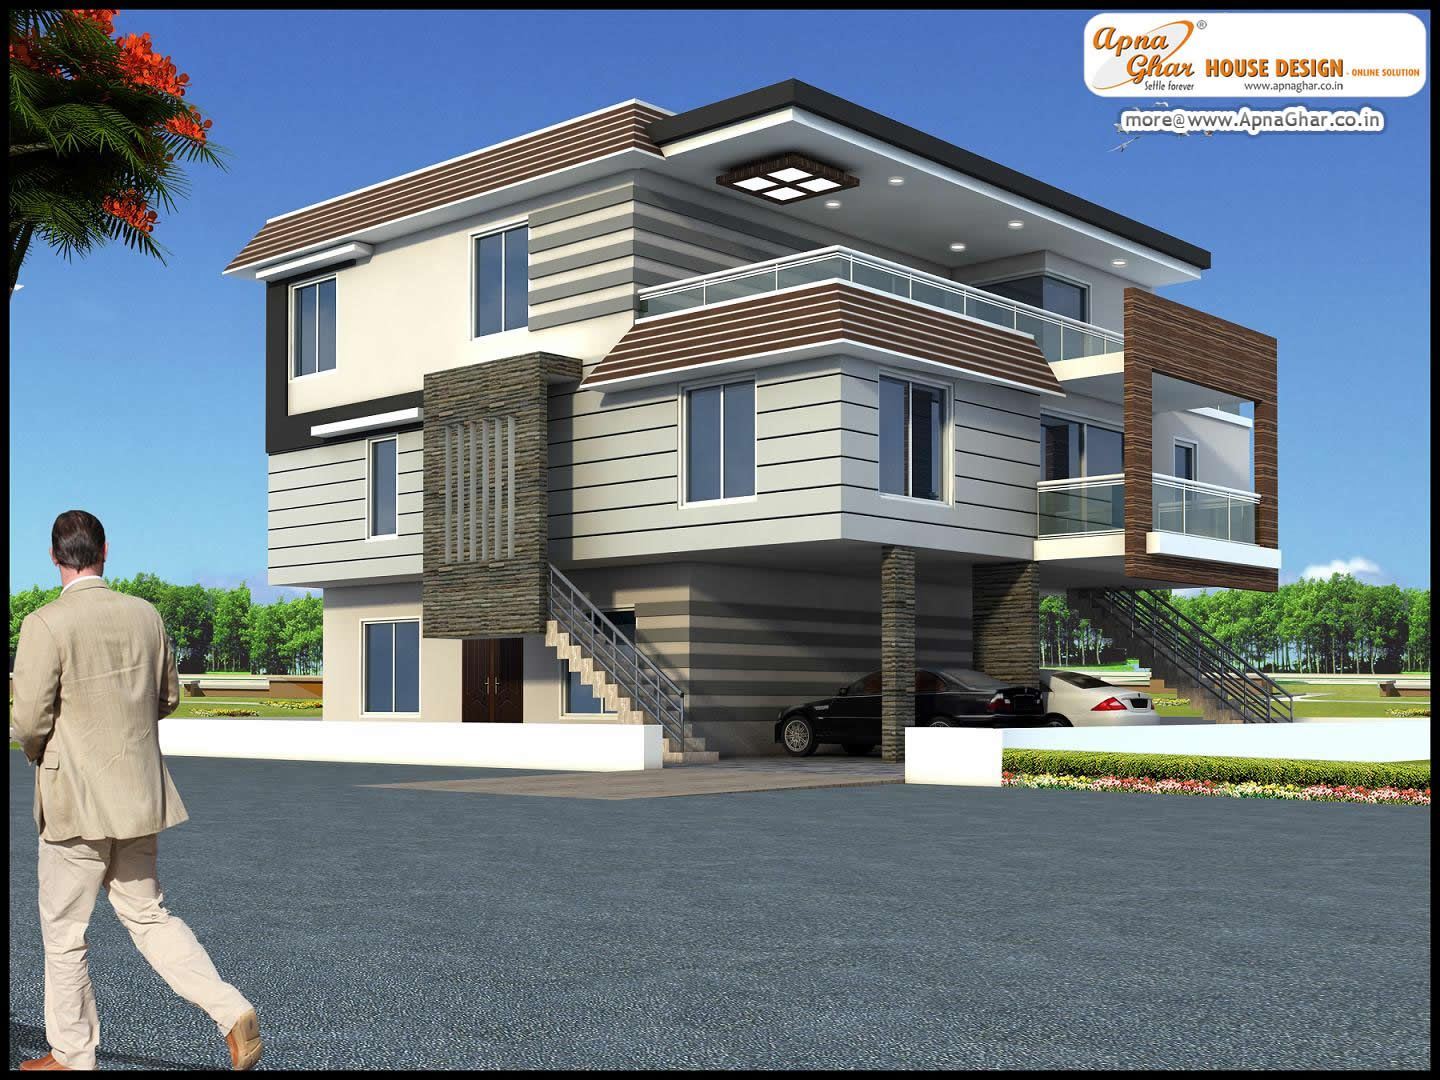 5 Bedroom Modern Triplex 3 Floor House Design Area 140 Sq Mts 14m X 10m Click On This Link Http Apnaghar Co In Login Aspx Returnurl 2f Evler Tasarim